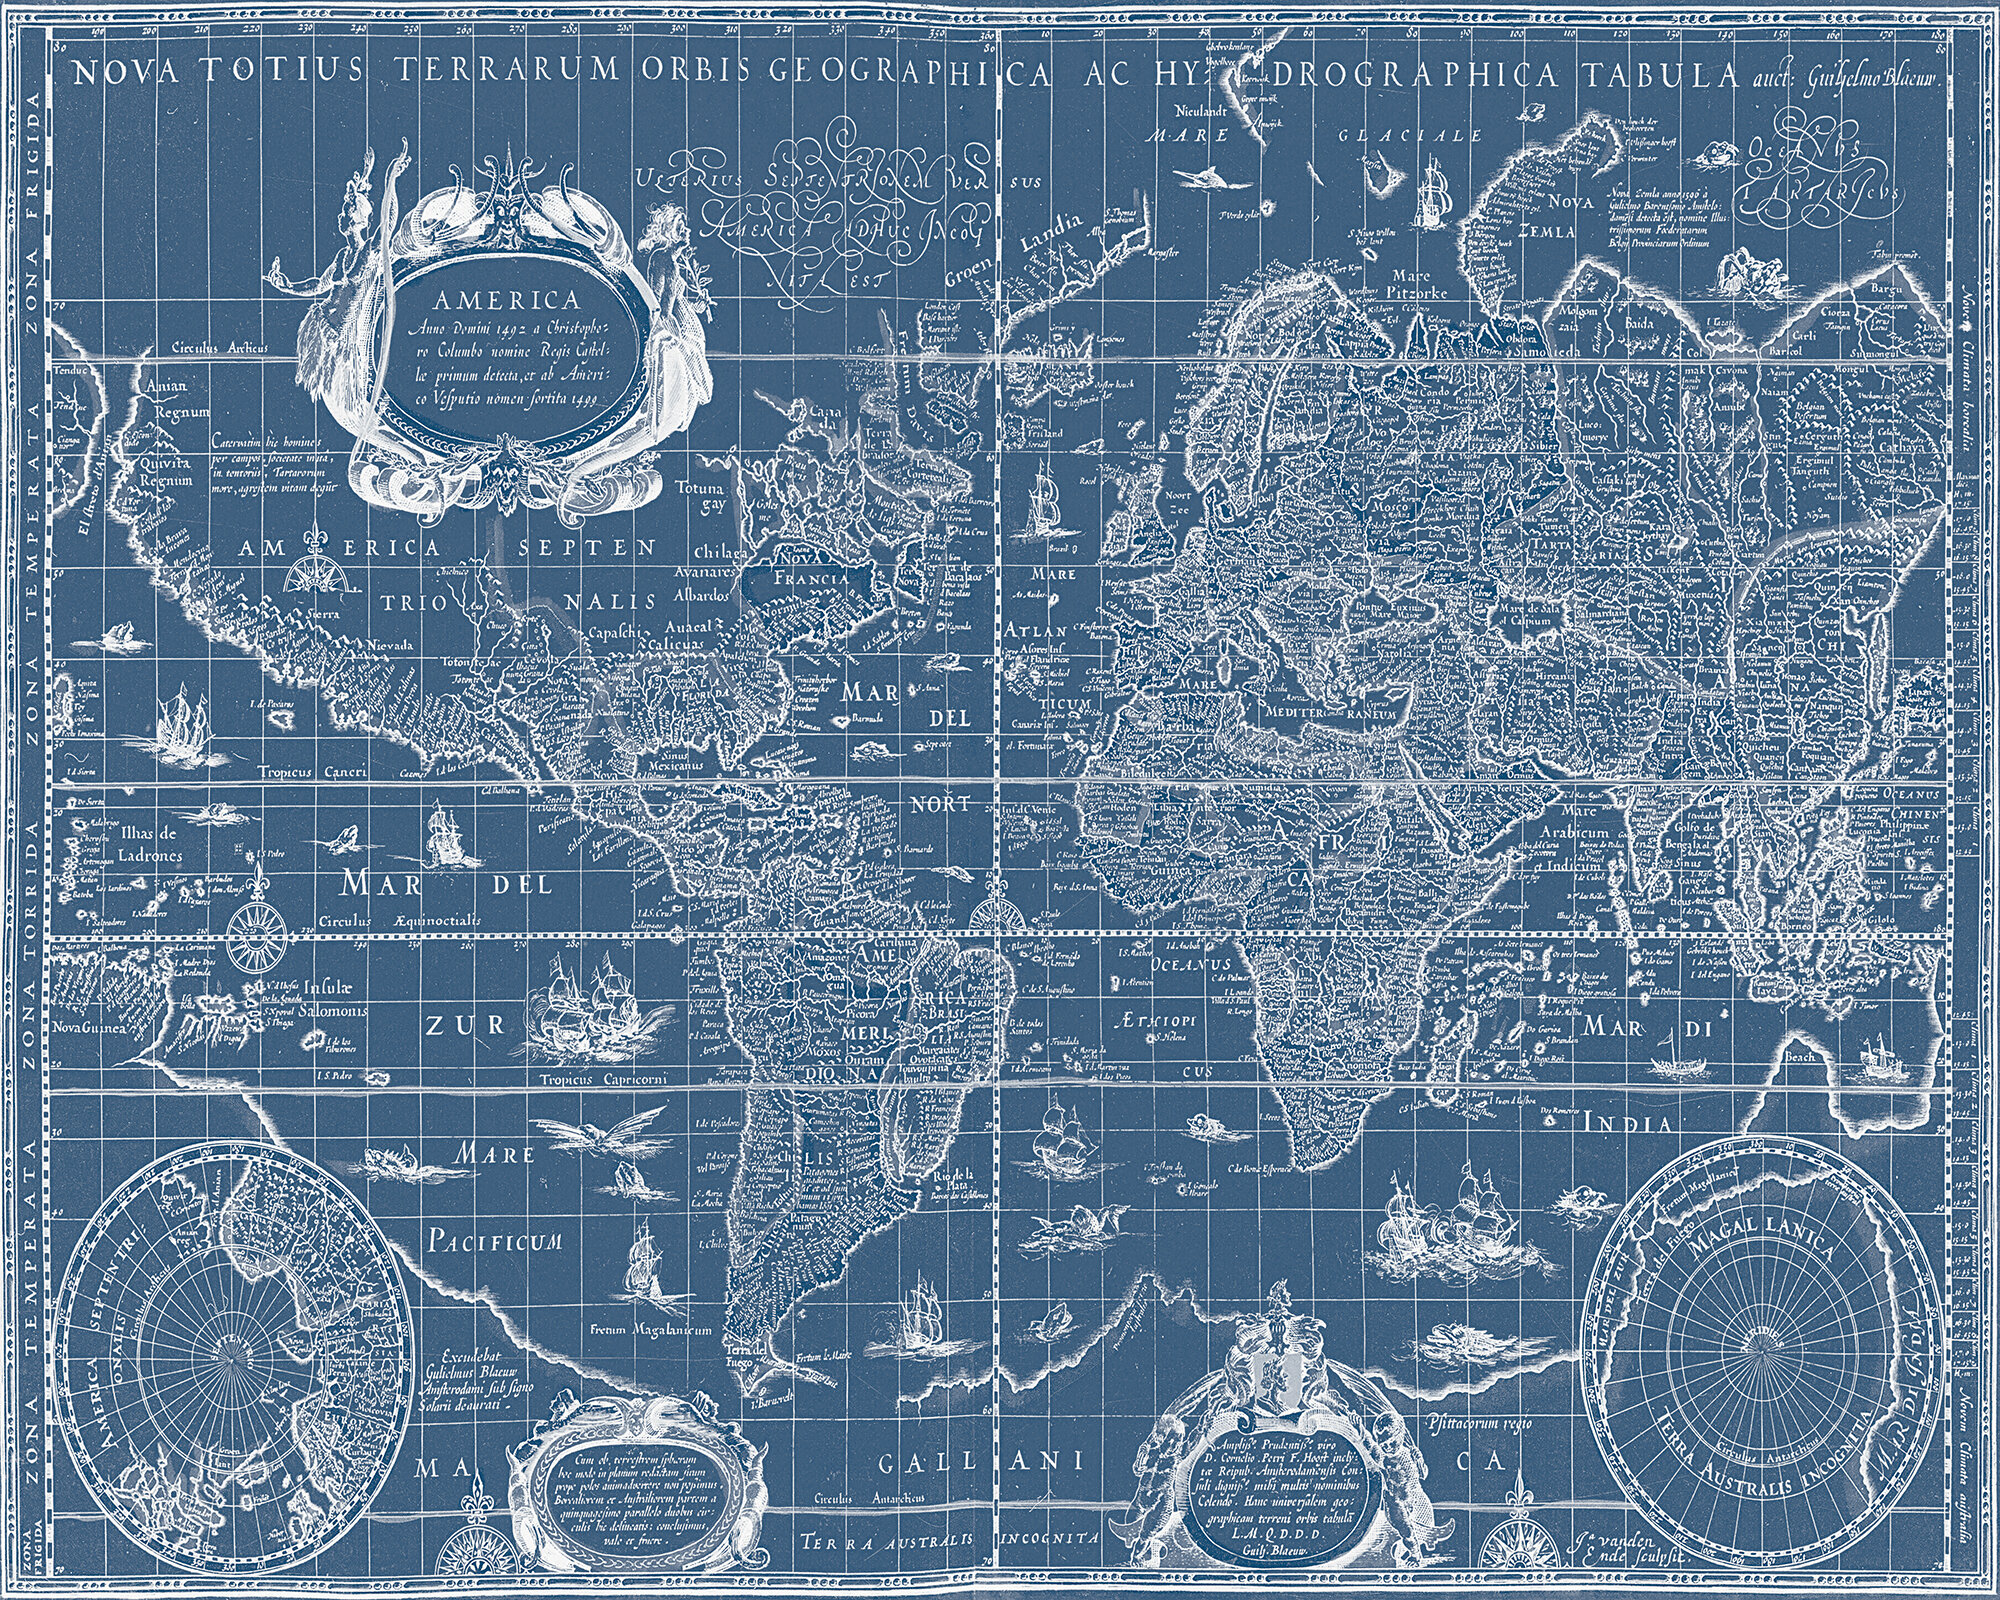 Stupell industries vintage blueprint world map graphic art on canvas stupell industries vintage blueprint world map graphic art on canvas wayfair malvernweather Image collections